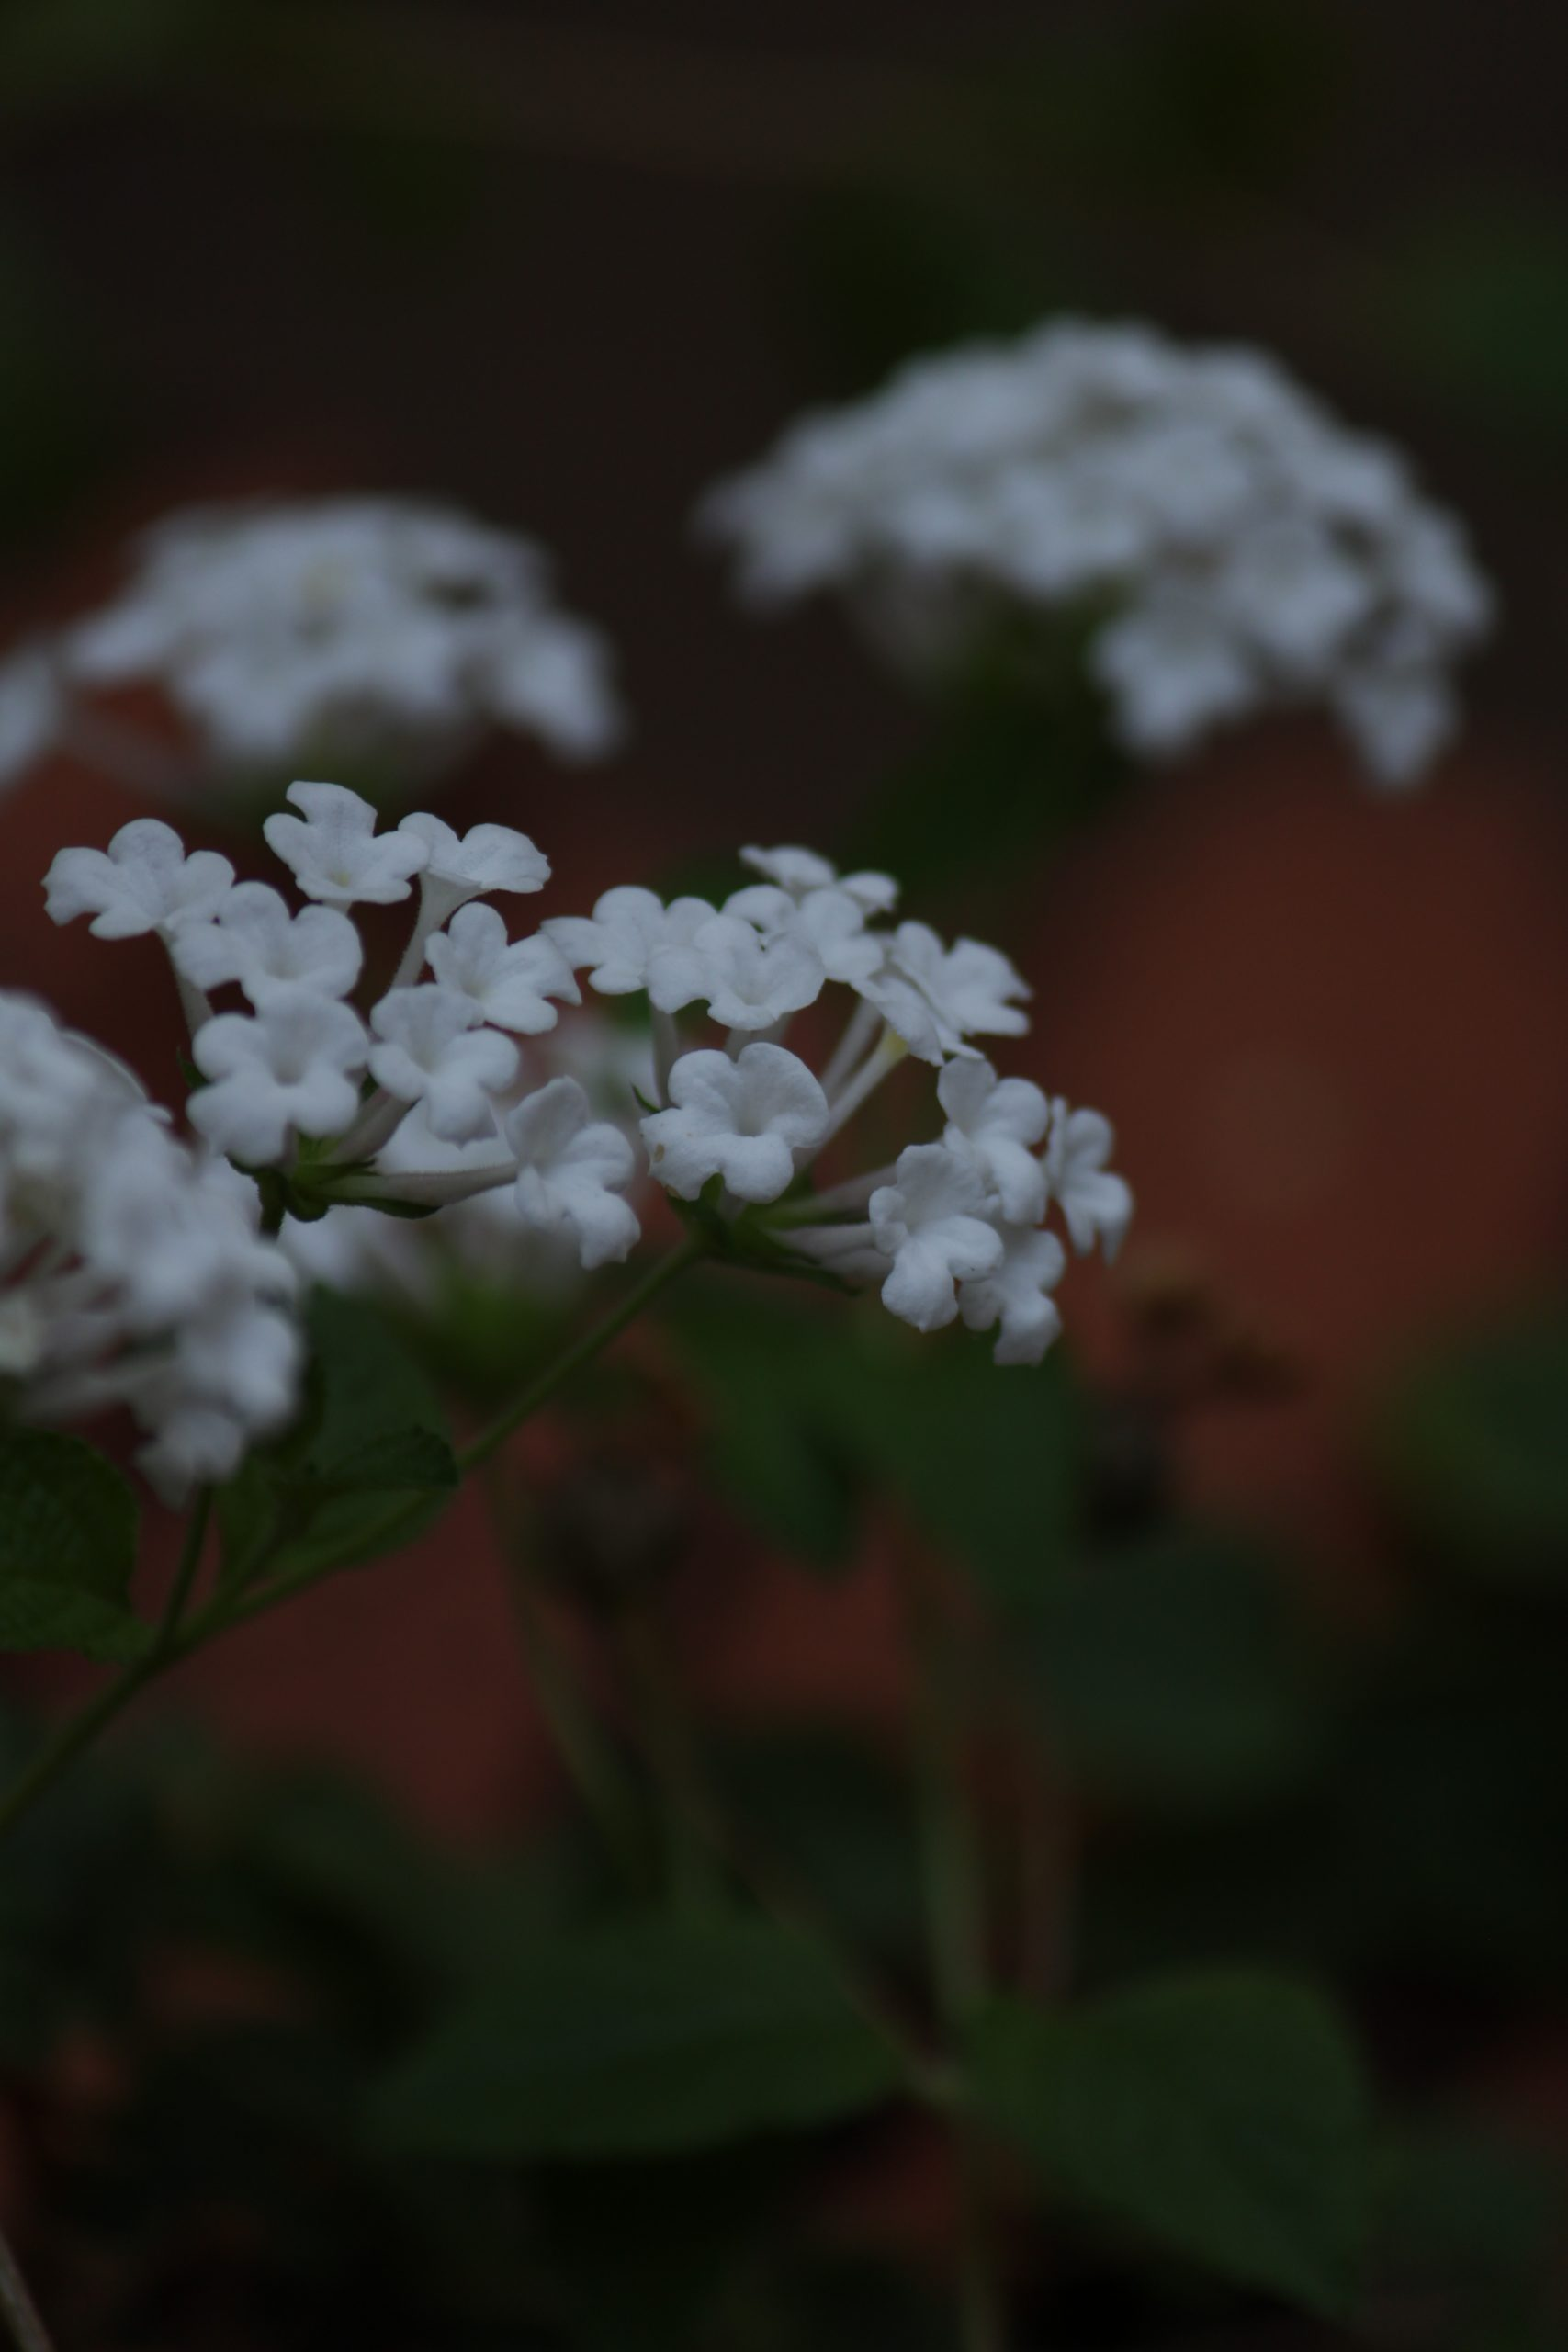 White flowers of a plant